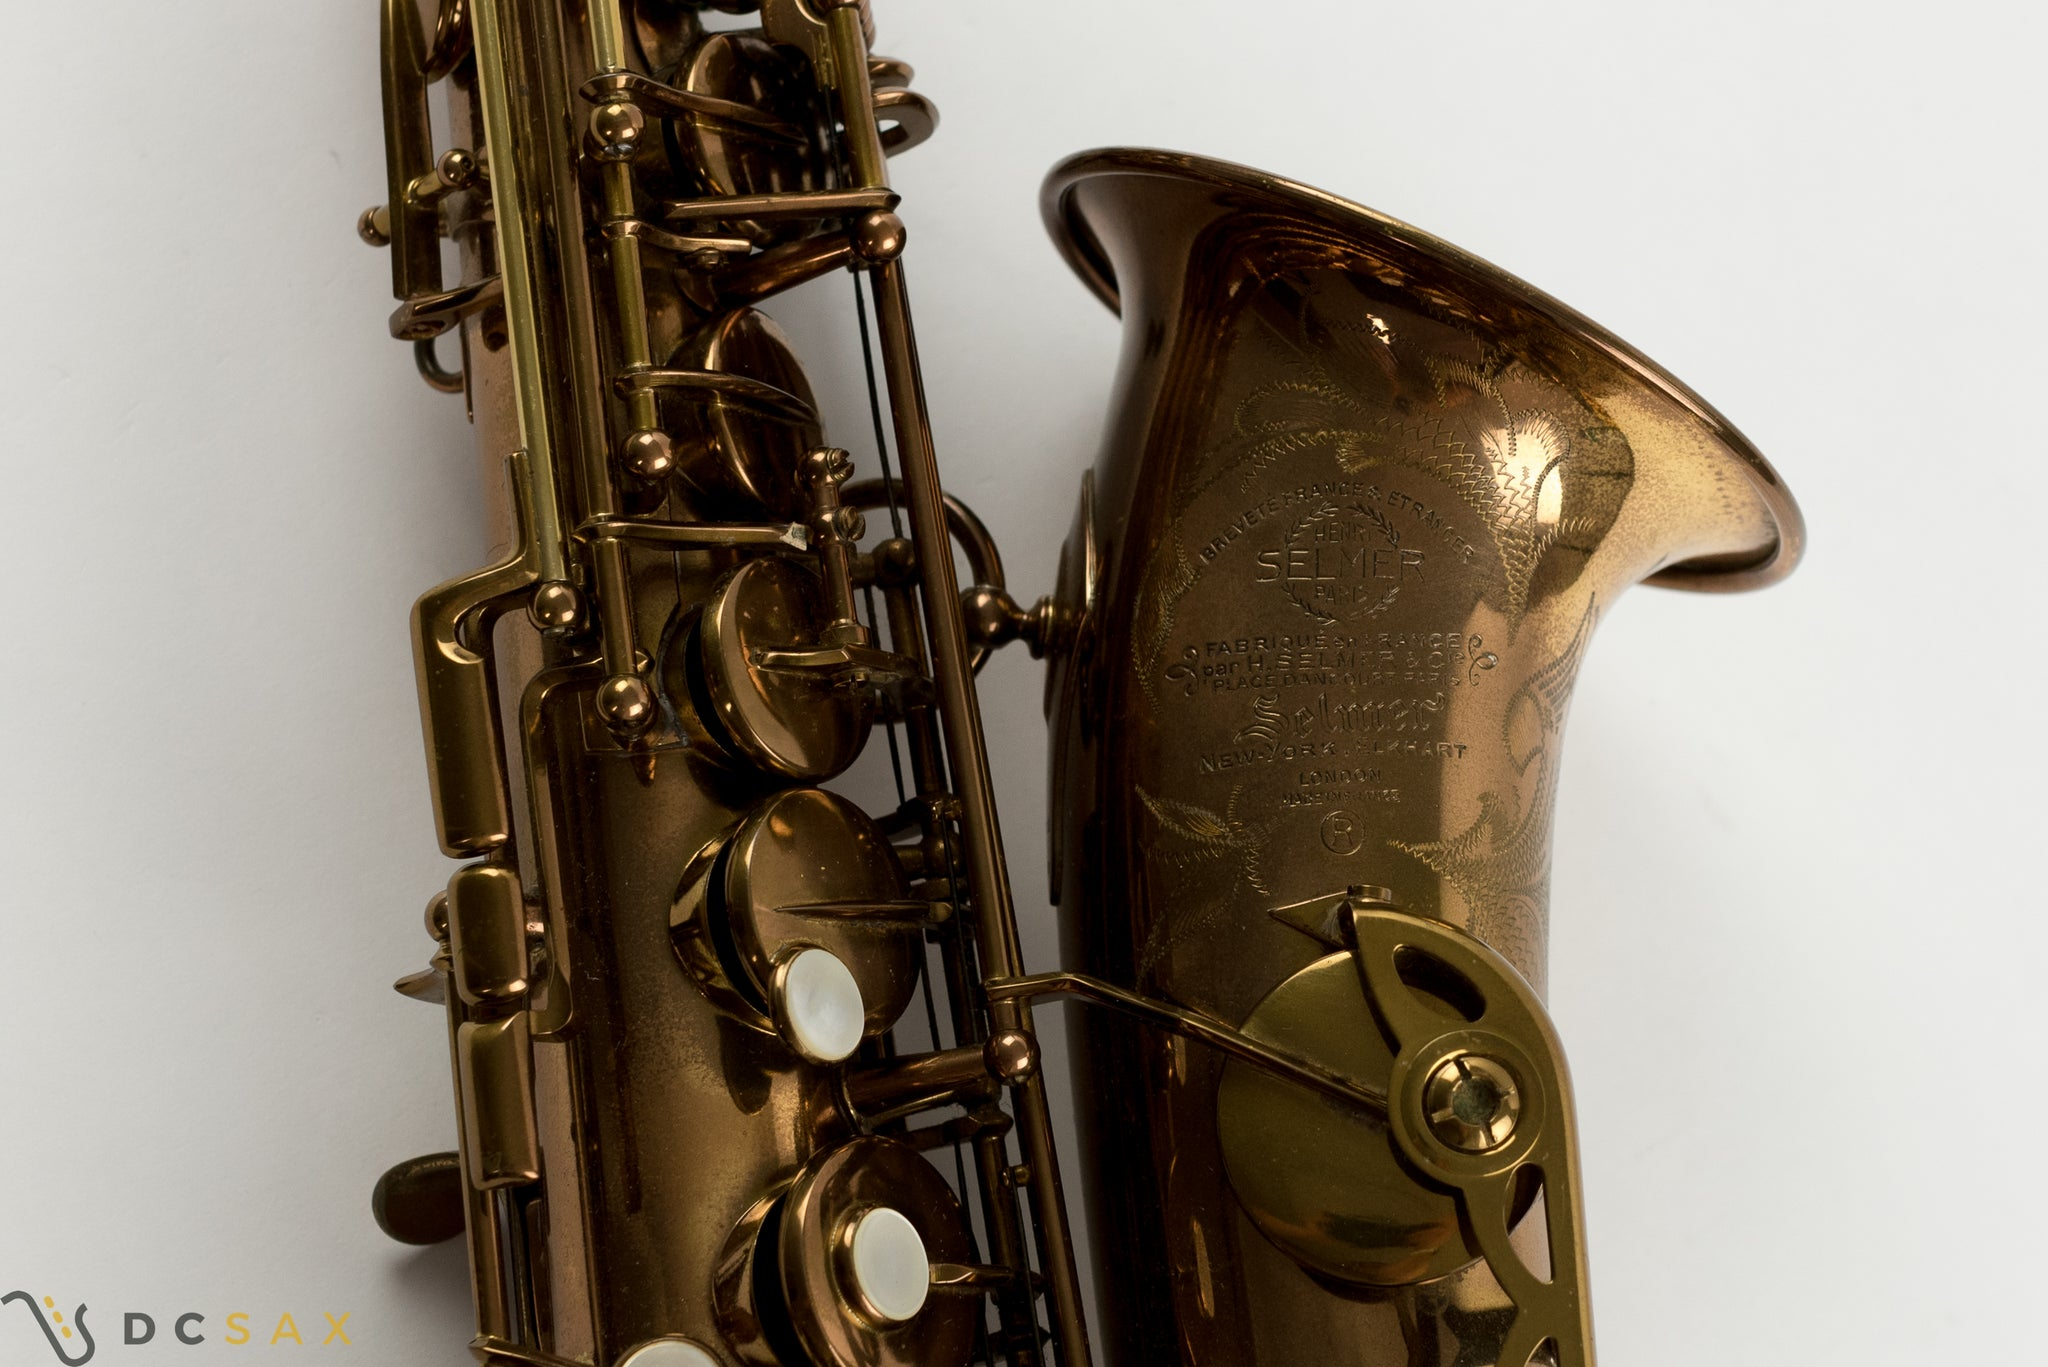 1957 Selmer Mark VI Alto Saxophone, 99%+ Original Lacquer, Near Mint, WOW!